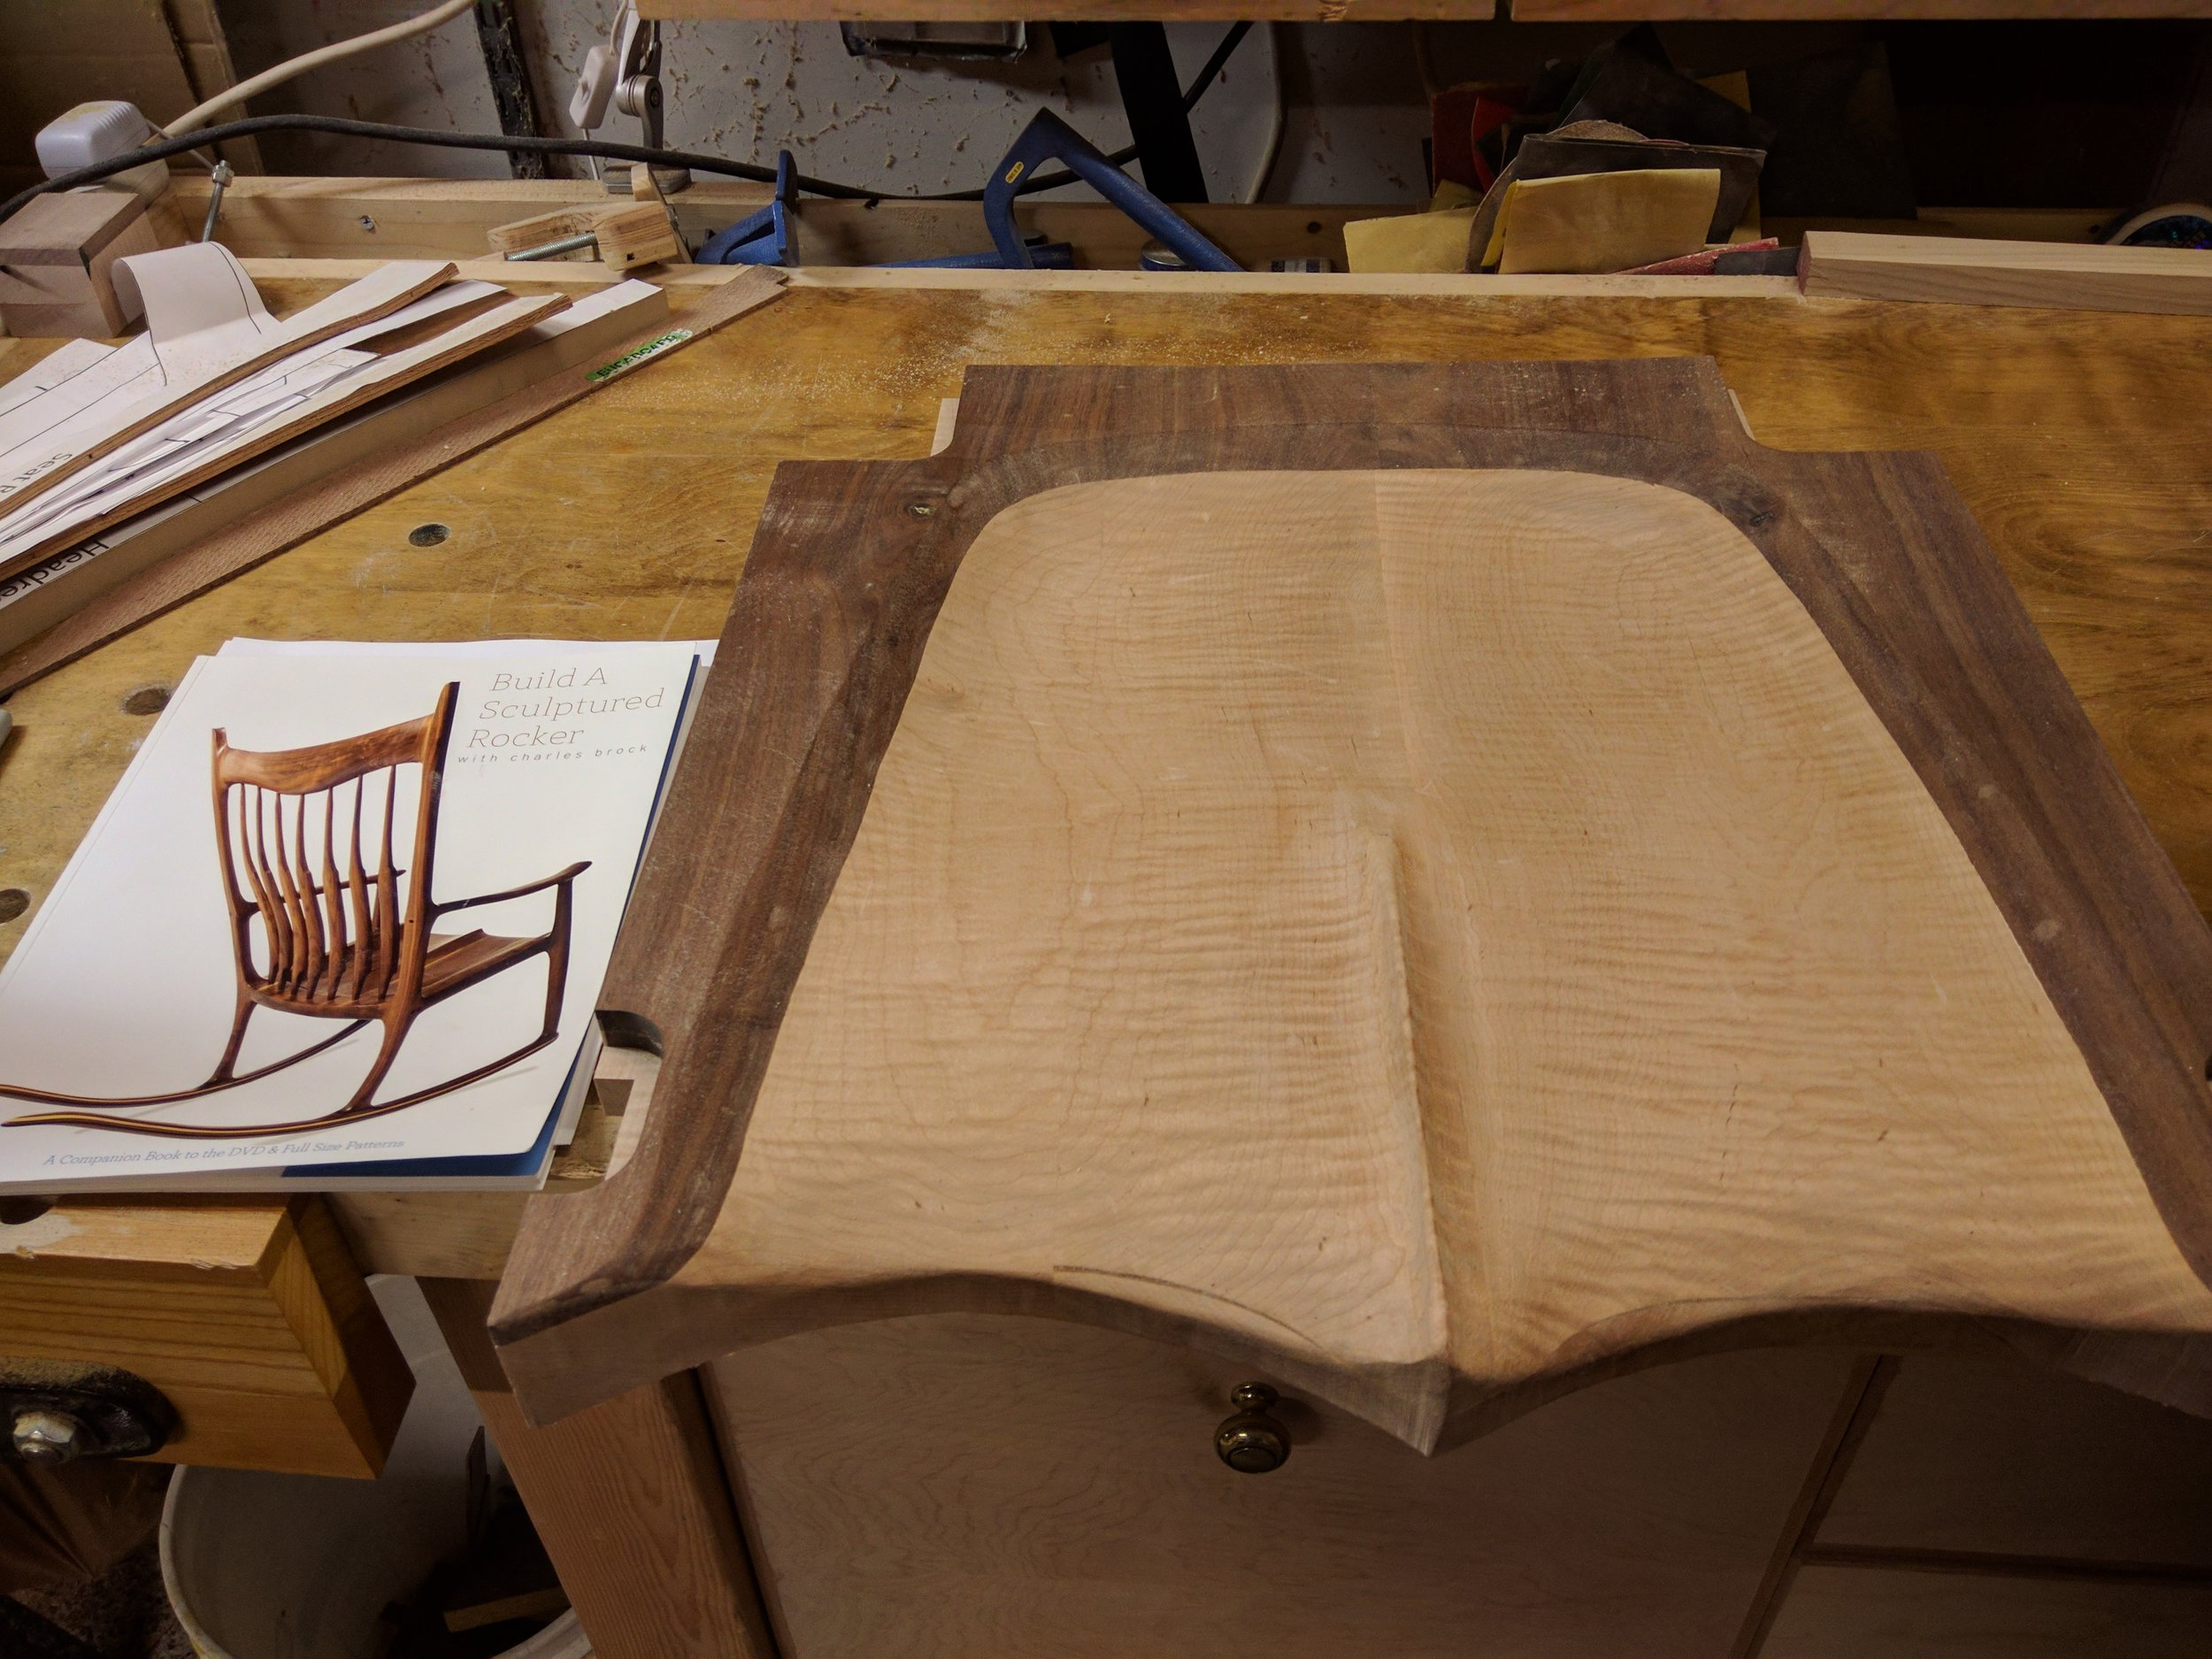 - Sculpting the Seat